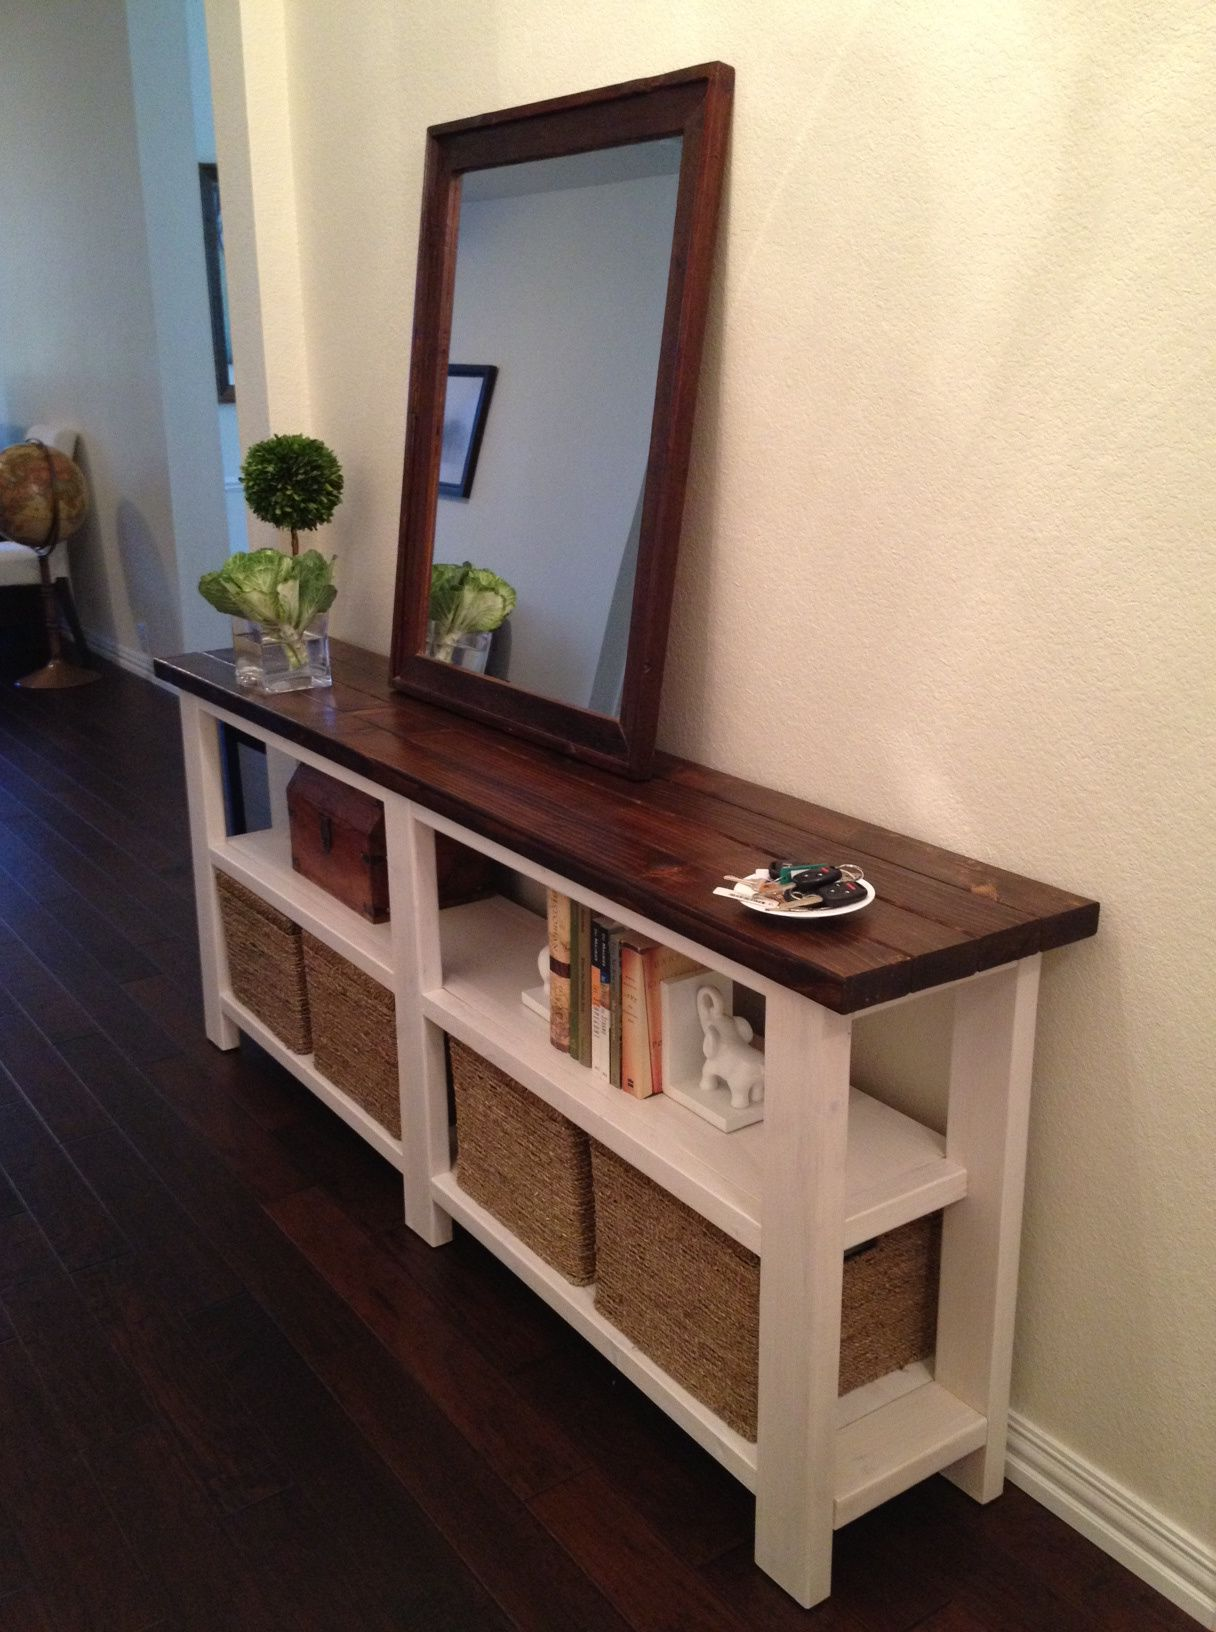 Rustic Chic Console Table Decor Home Diy Home